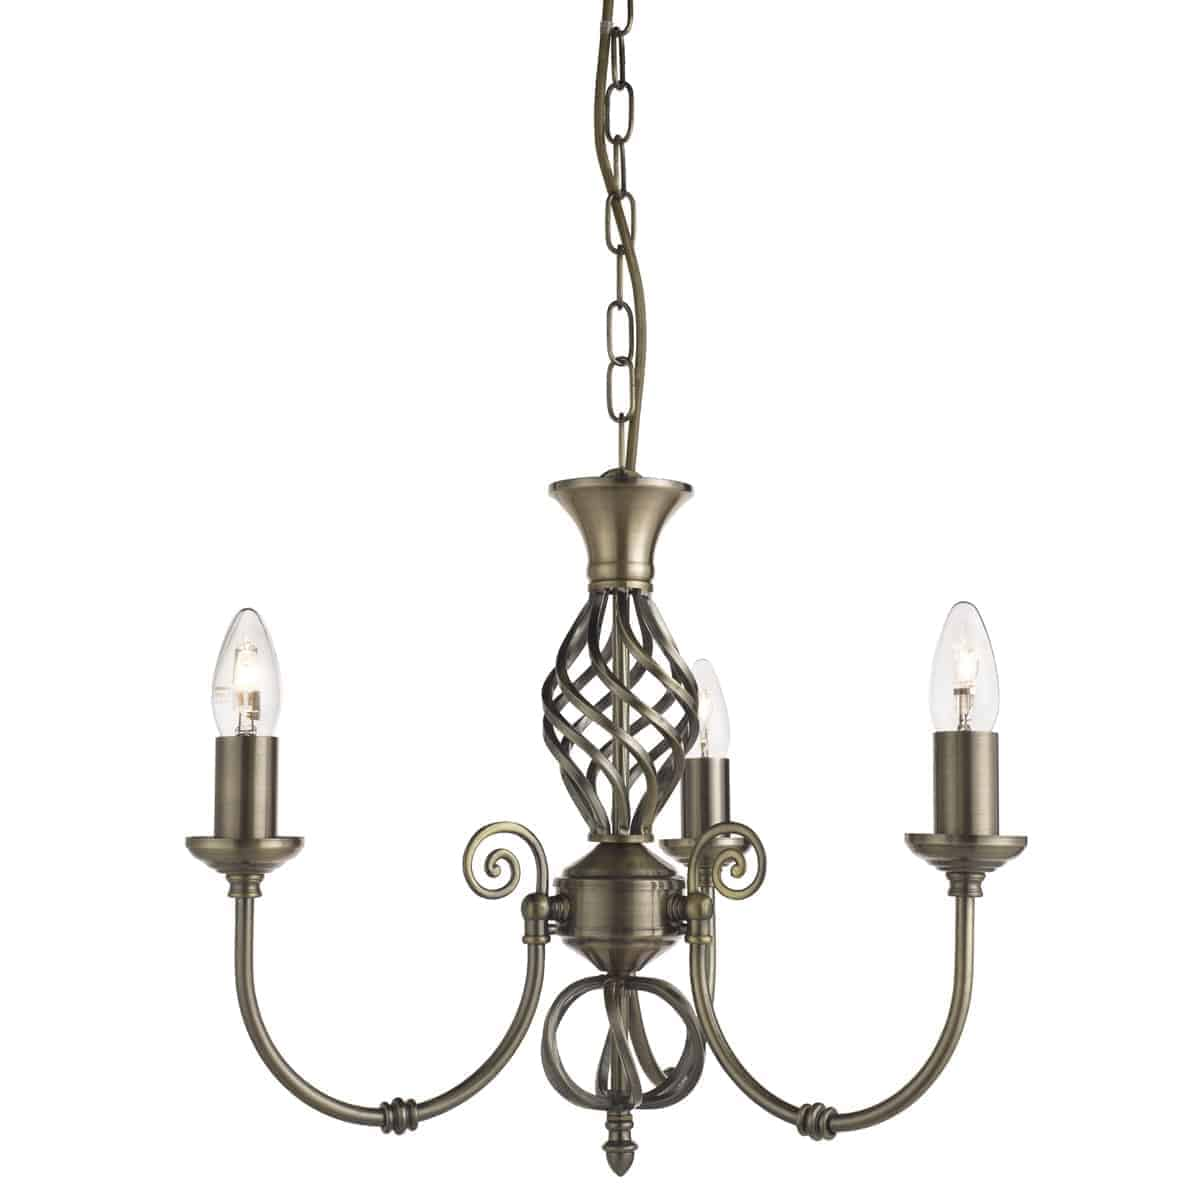 Searchlight 8393-3 Zanzibar Antique Brass 3 Light Fitting with Ornate Twisted Column